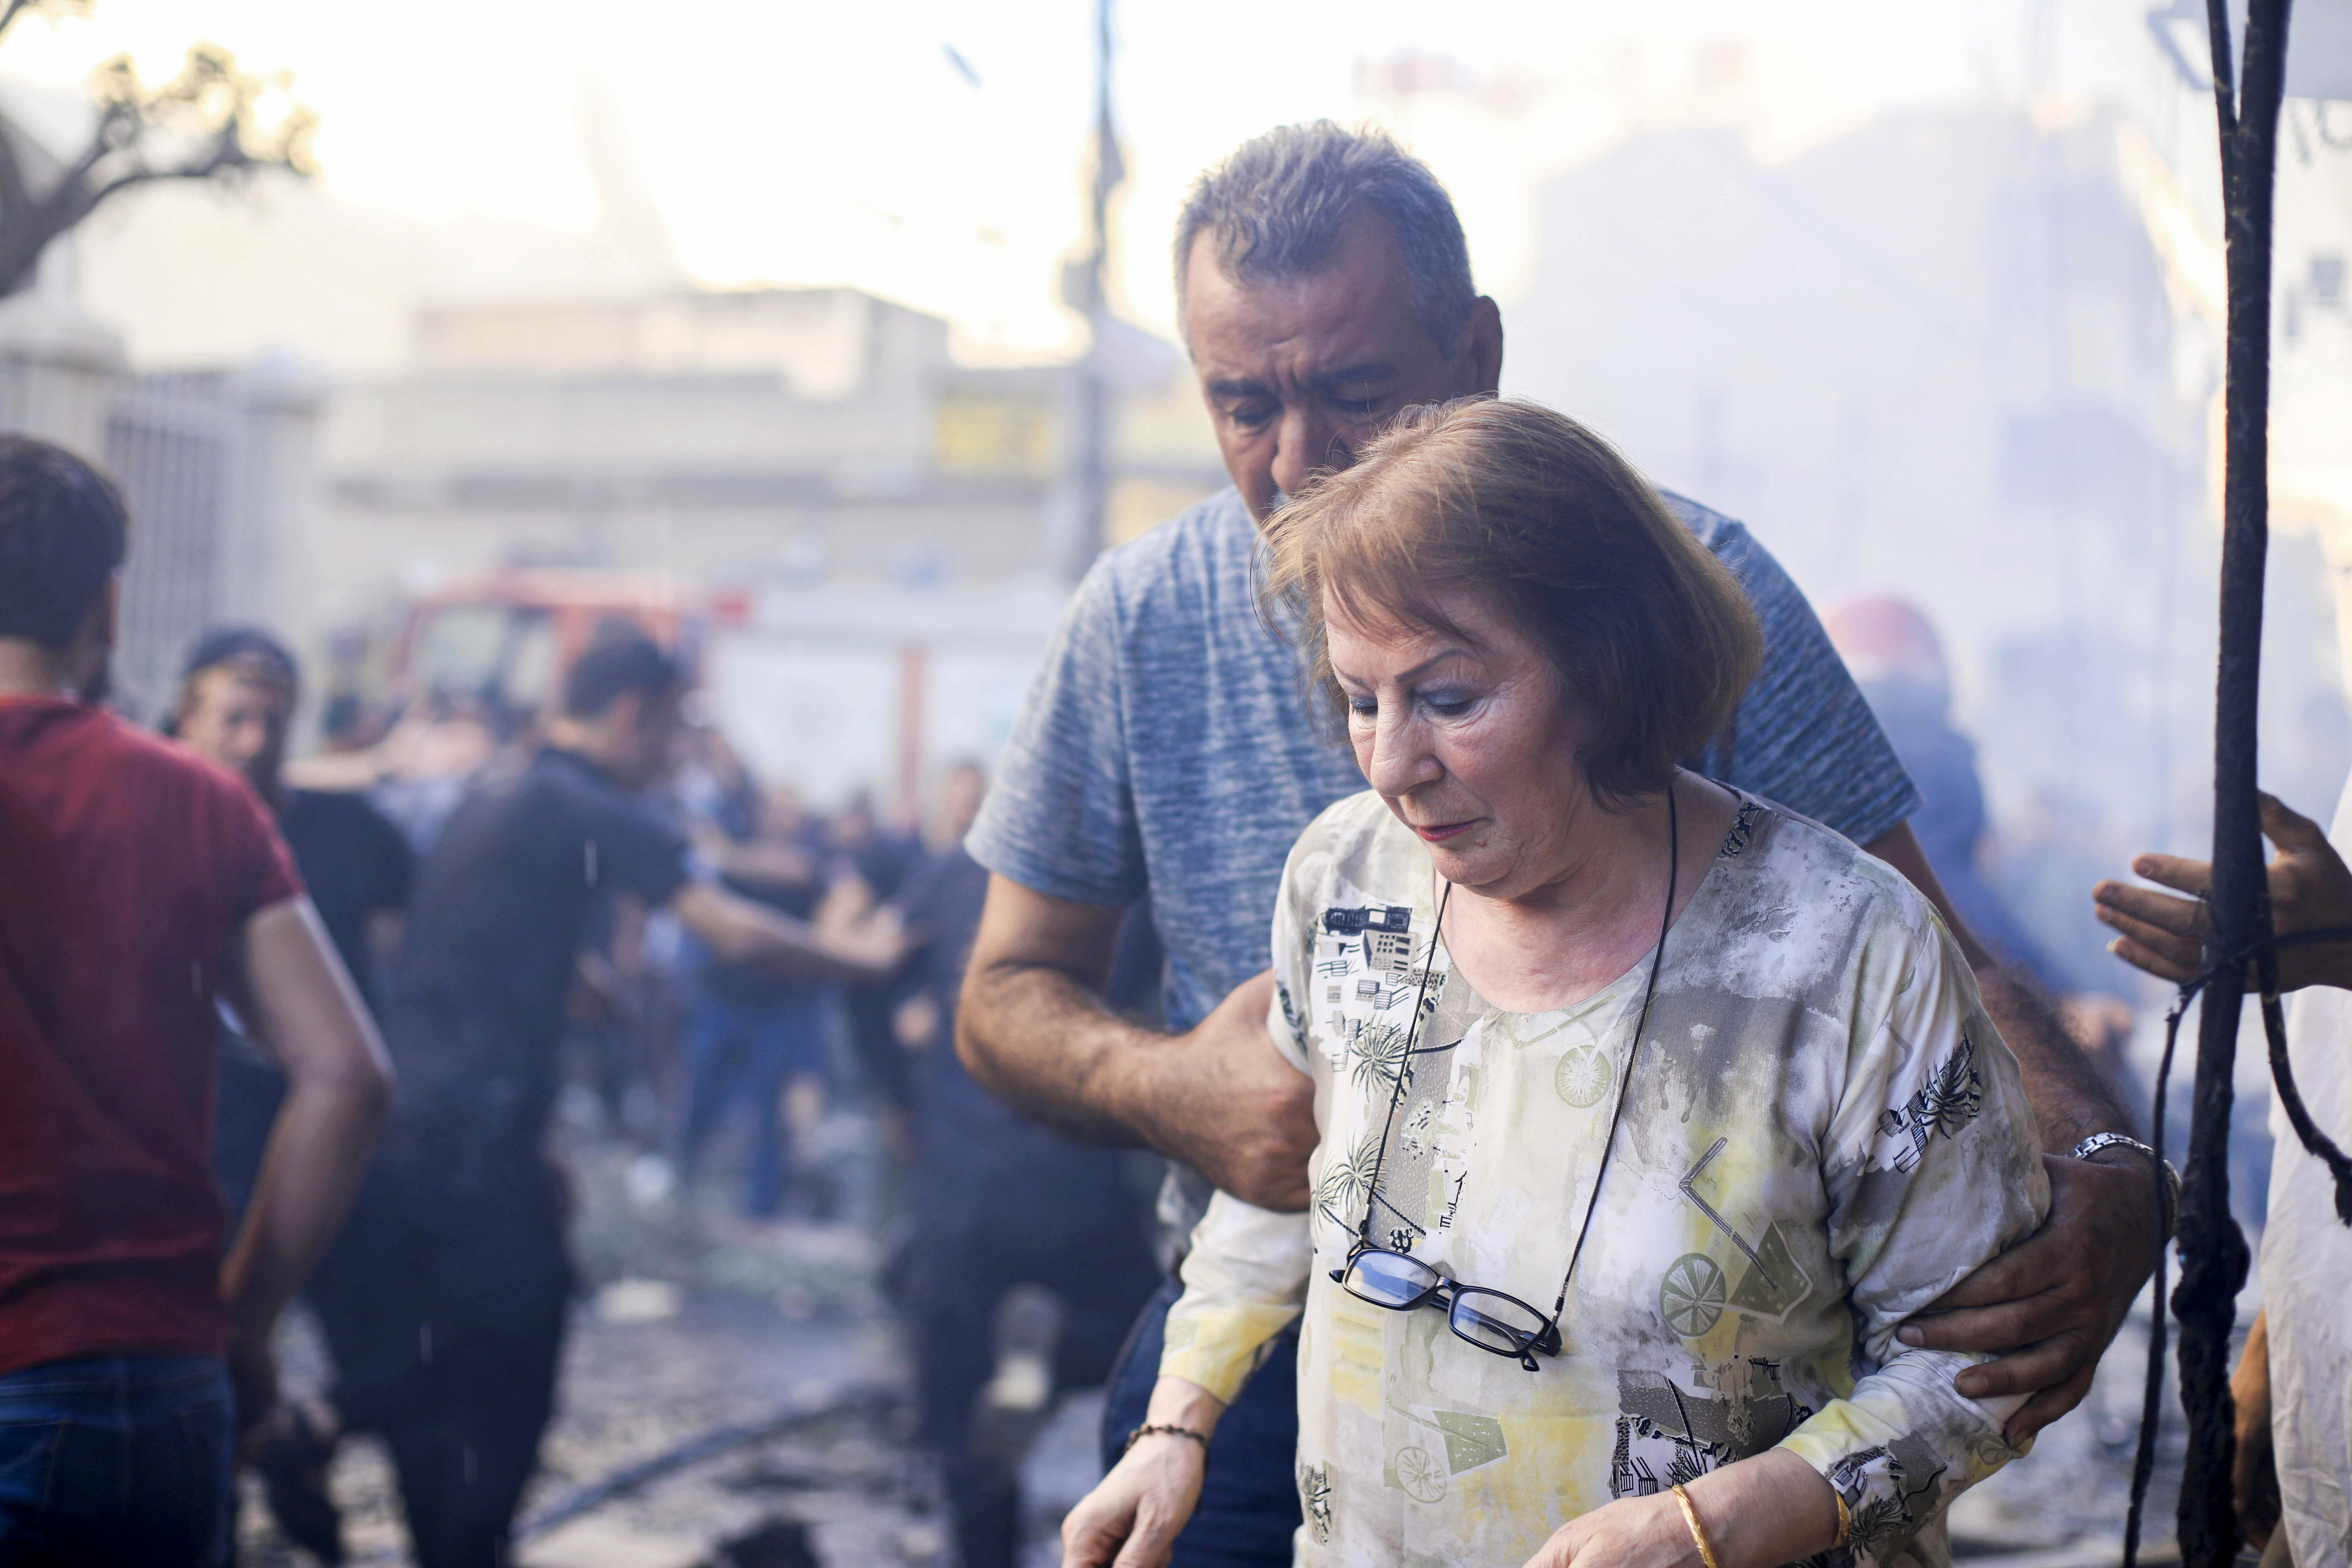 At least 11 people were injured in the blast during evening services. It was unclear who was responsible for the attack. Photo: Rodi Said/Reuters.